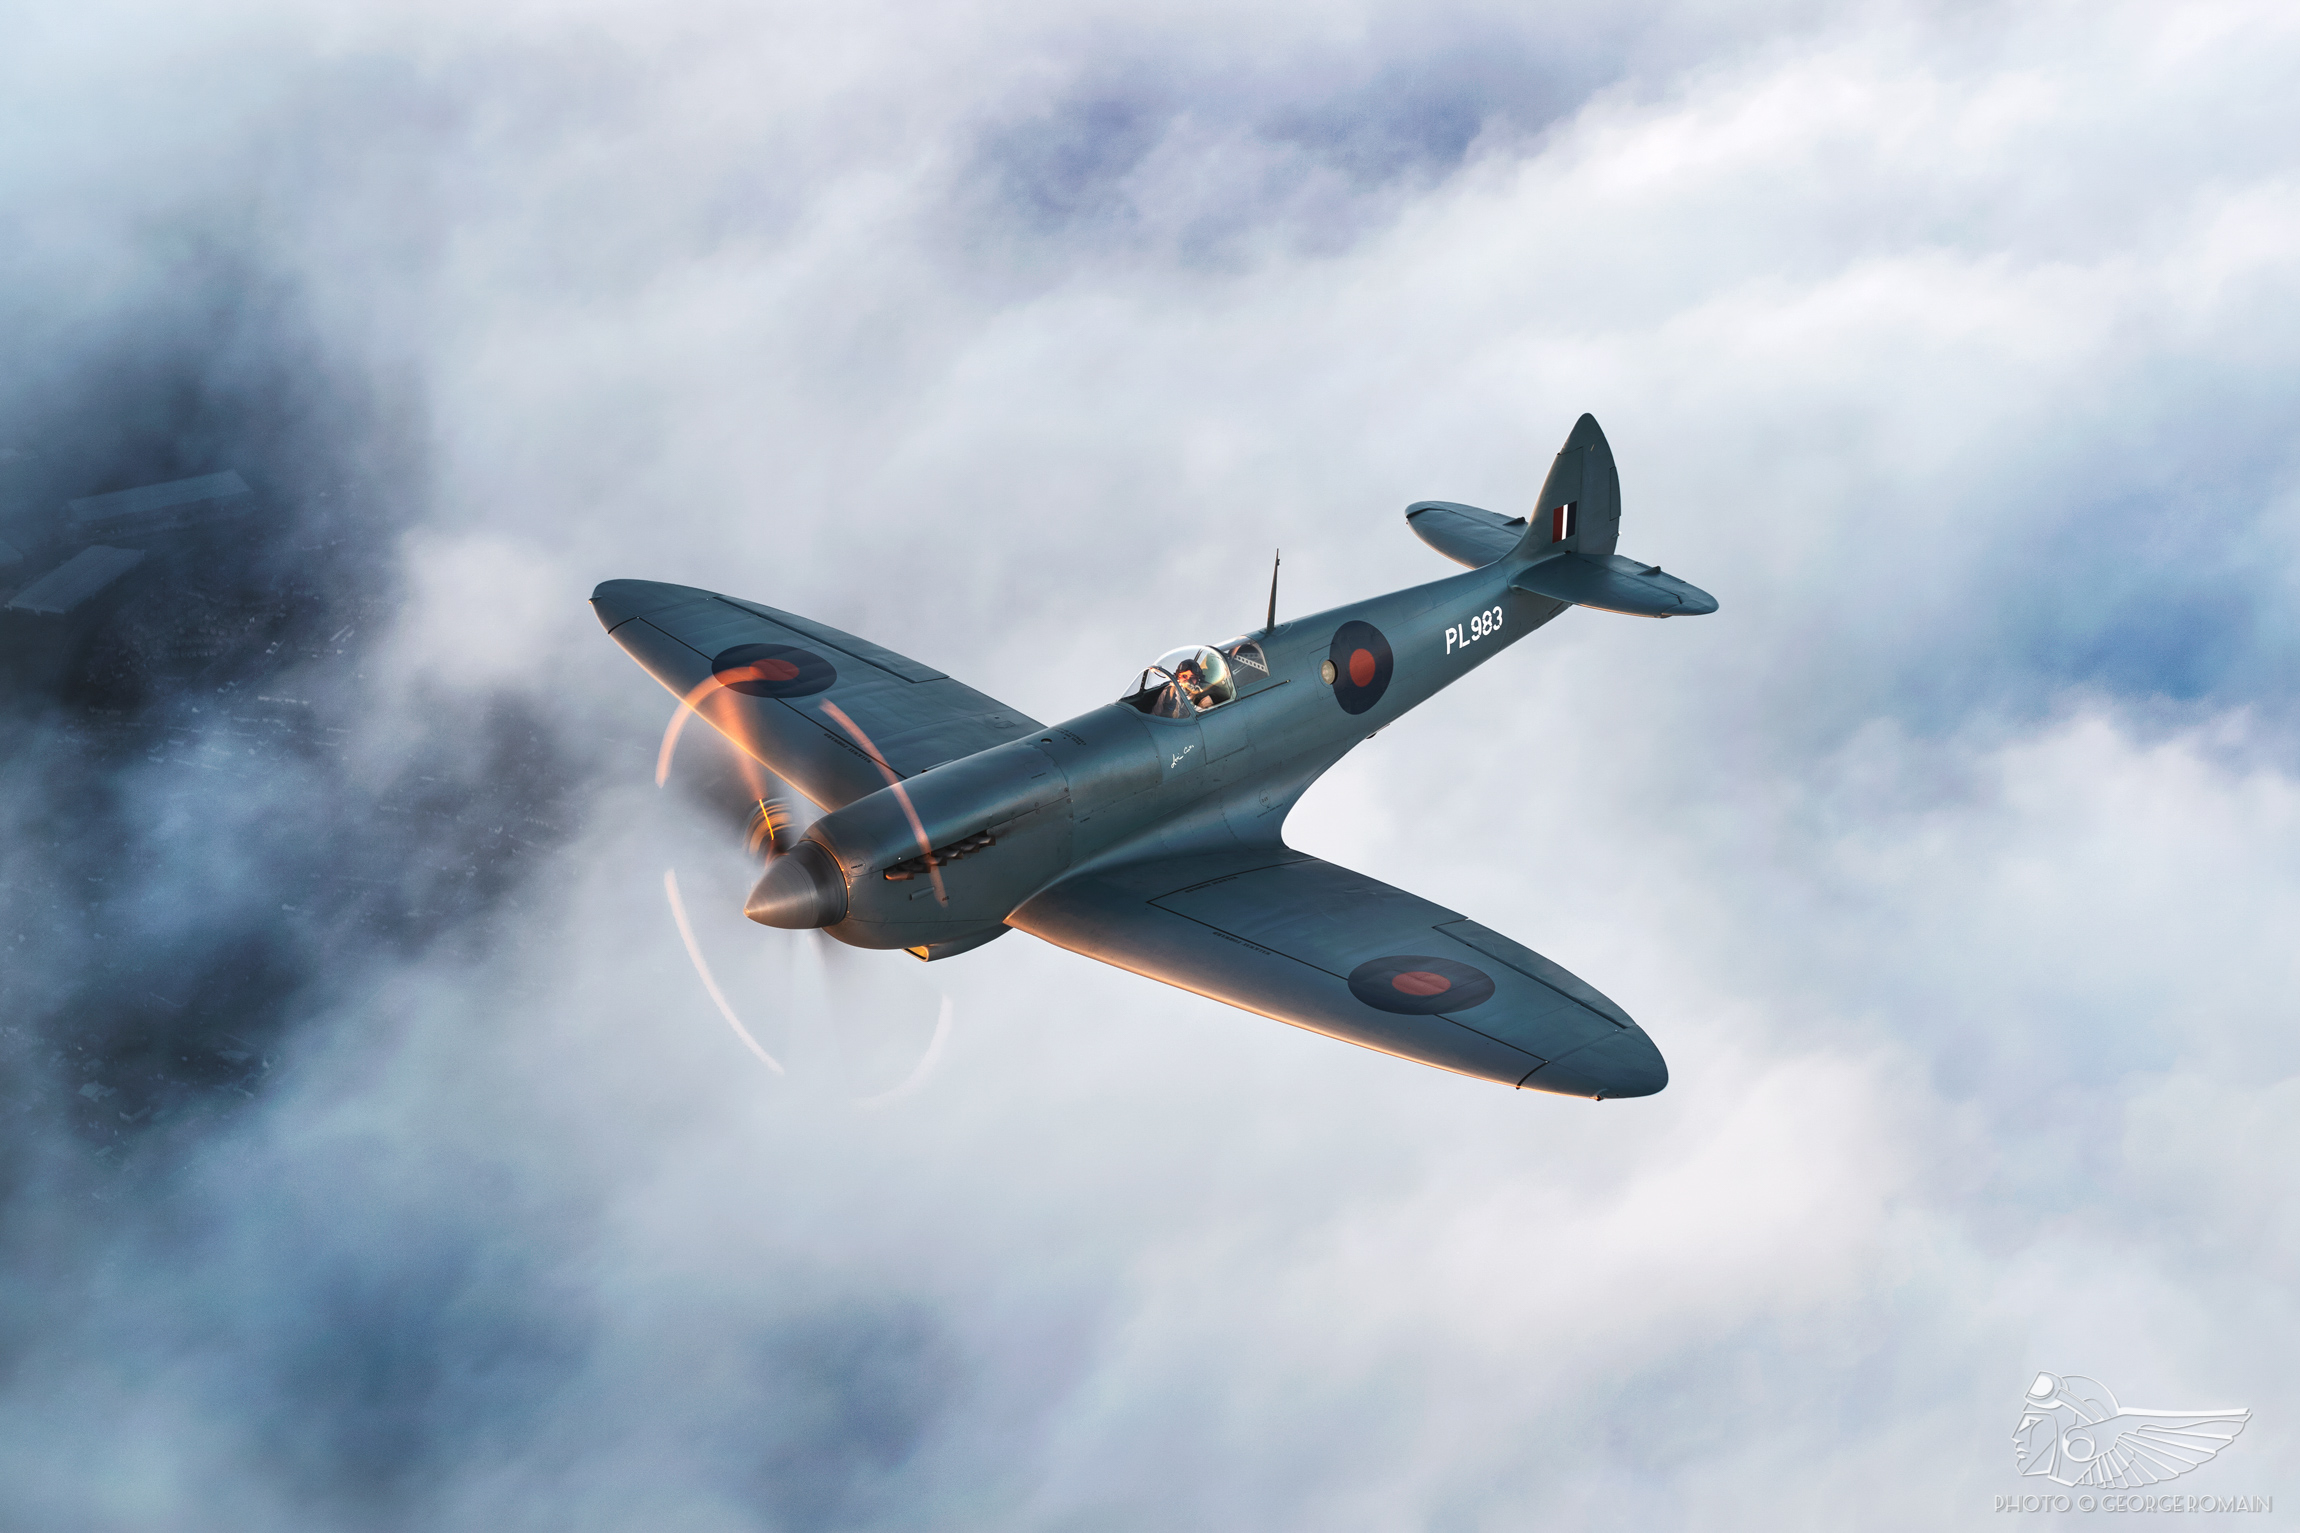 A History: John Romain and Spitfire PR XI PL983 | The